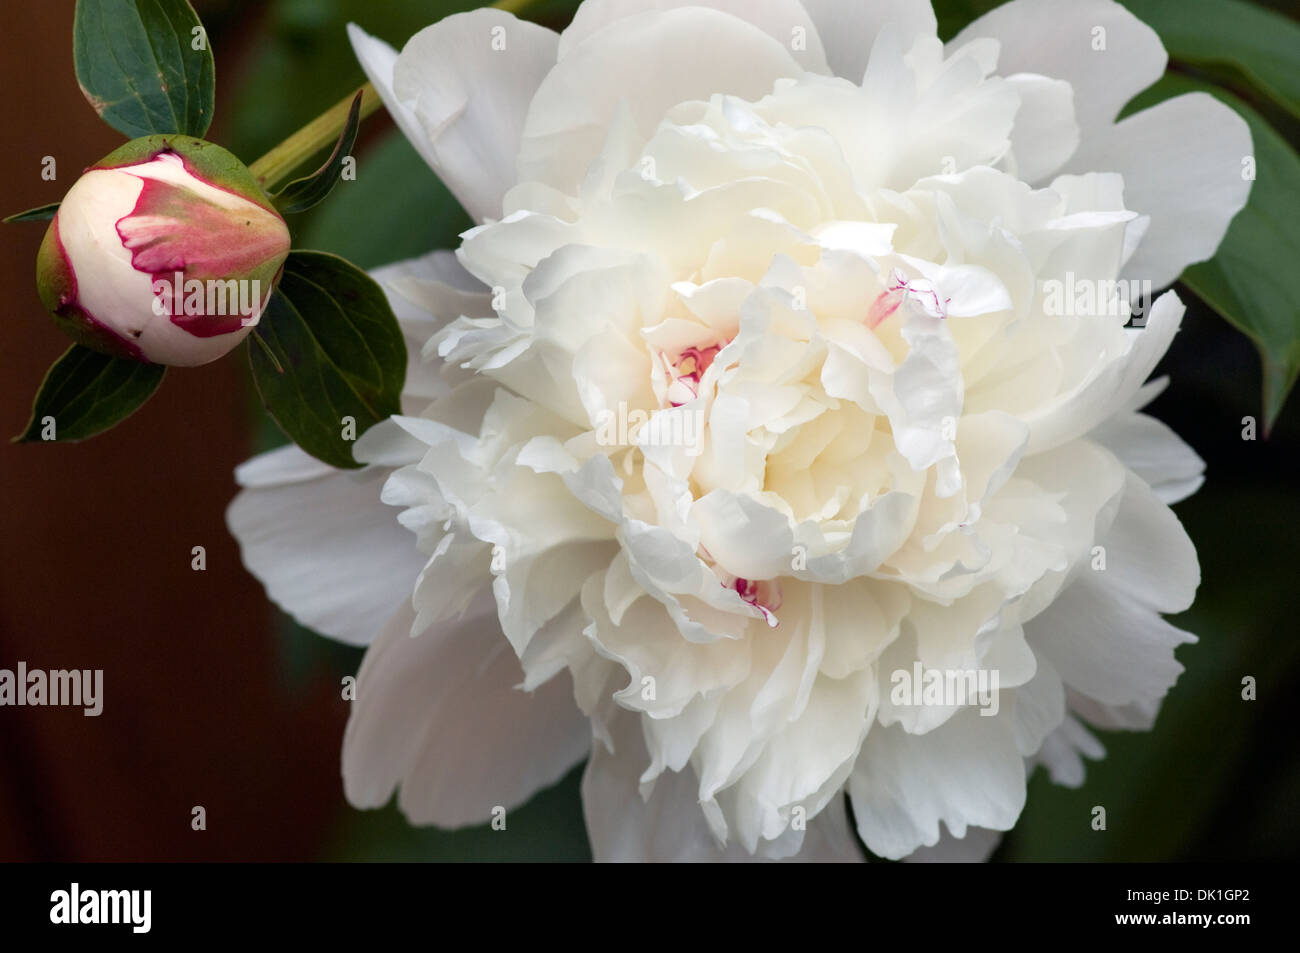 White Peony Flower Stock Photos White Peony Flower Stock Images